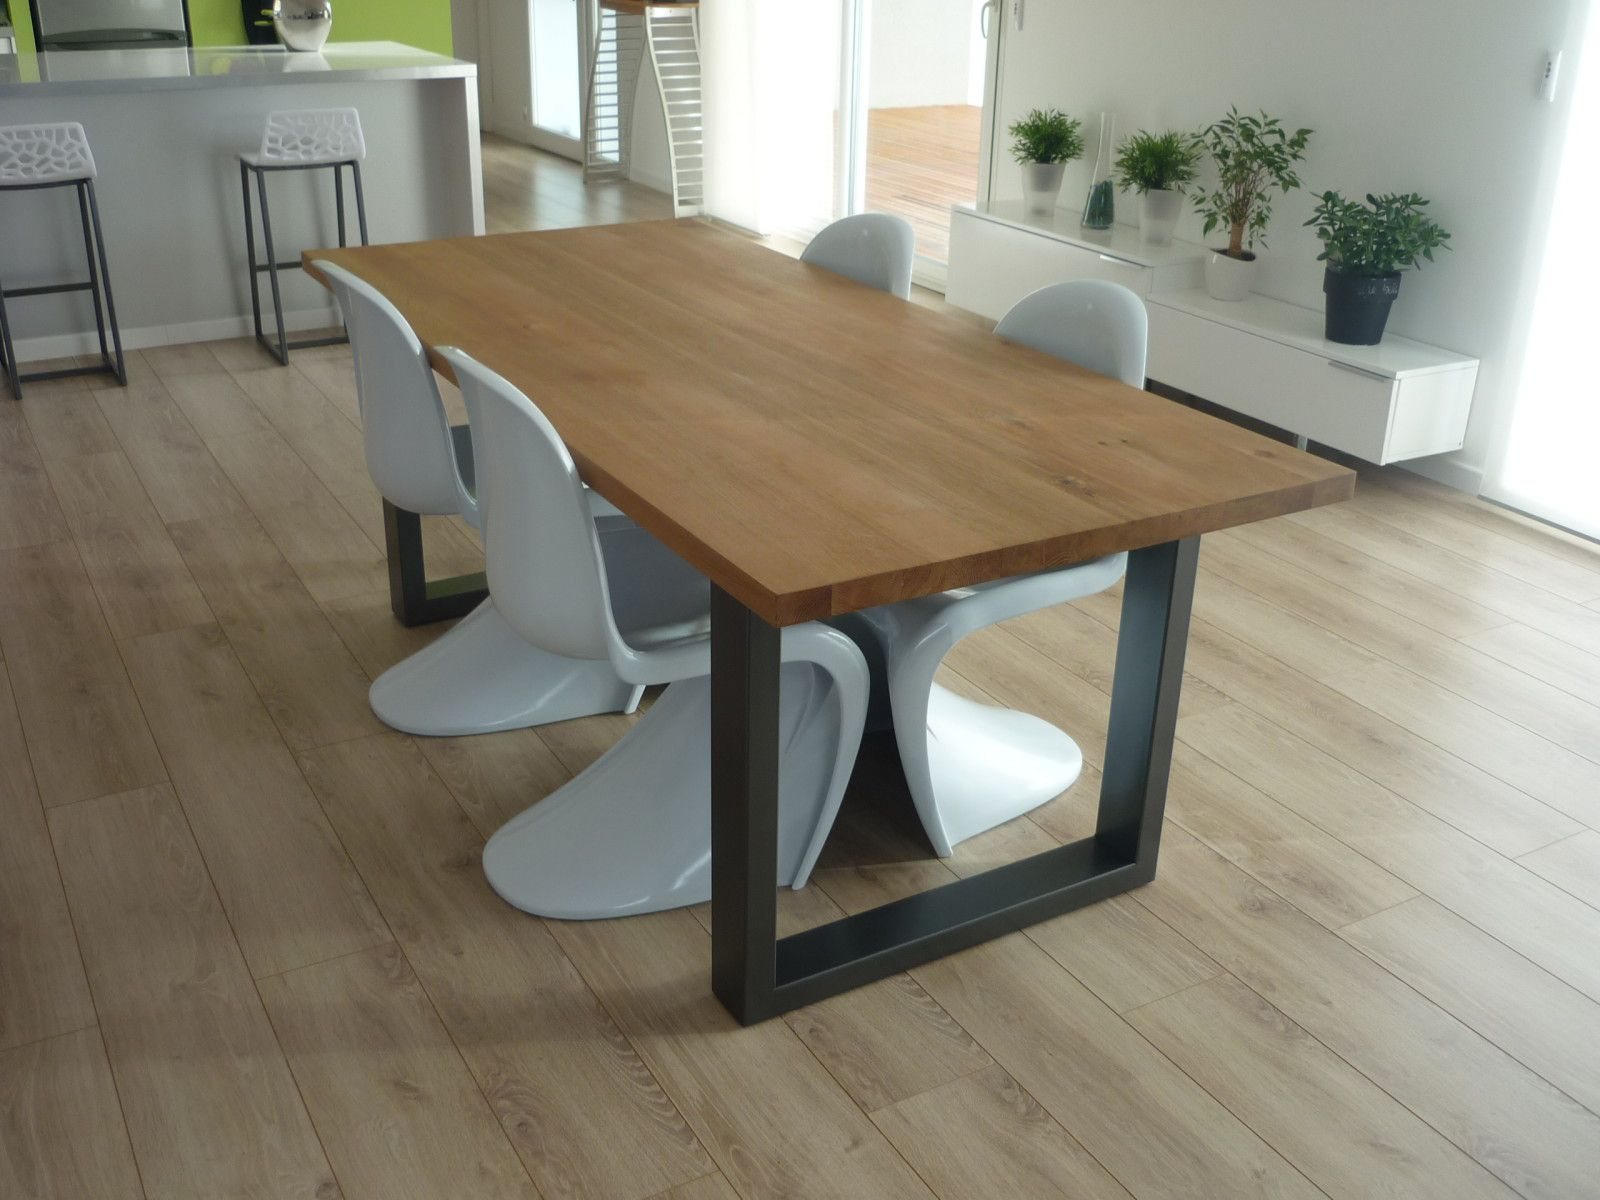 Table personnes - Table 4 personnes dimensions ...